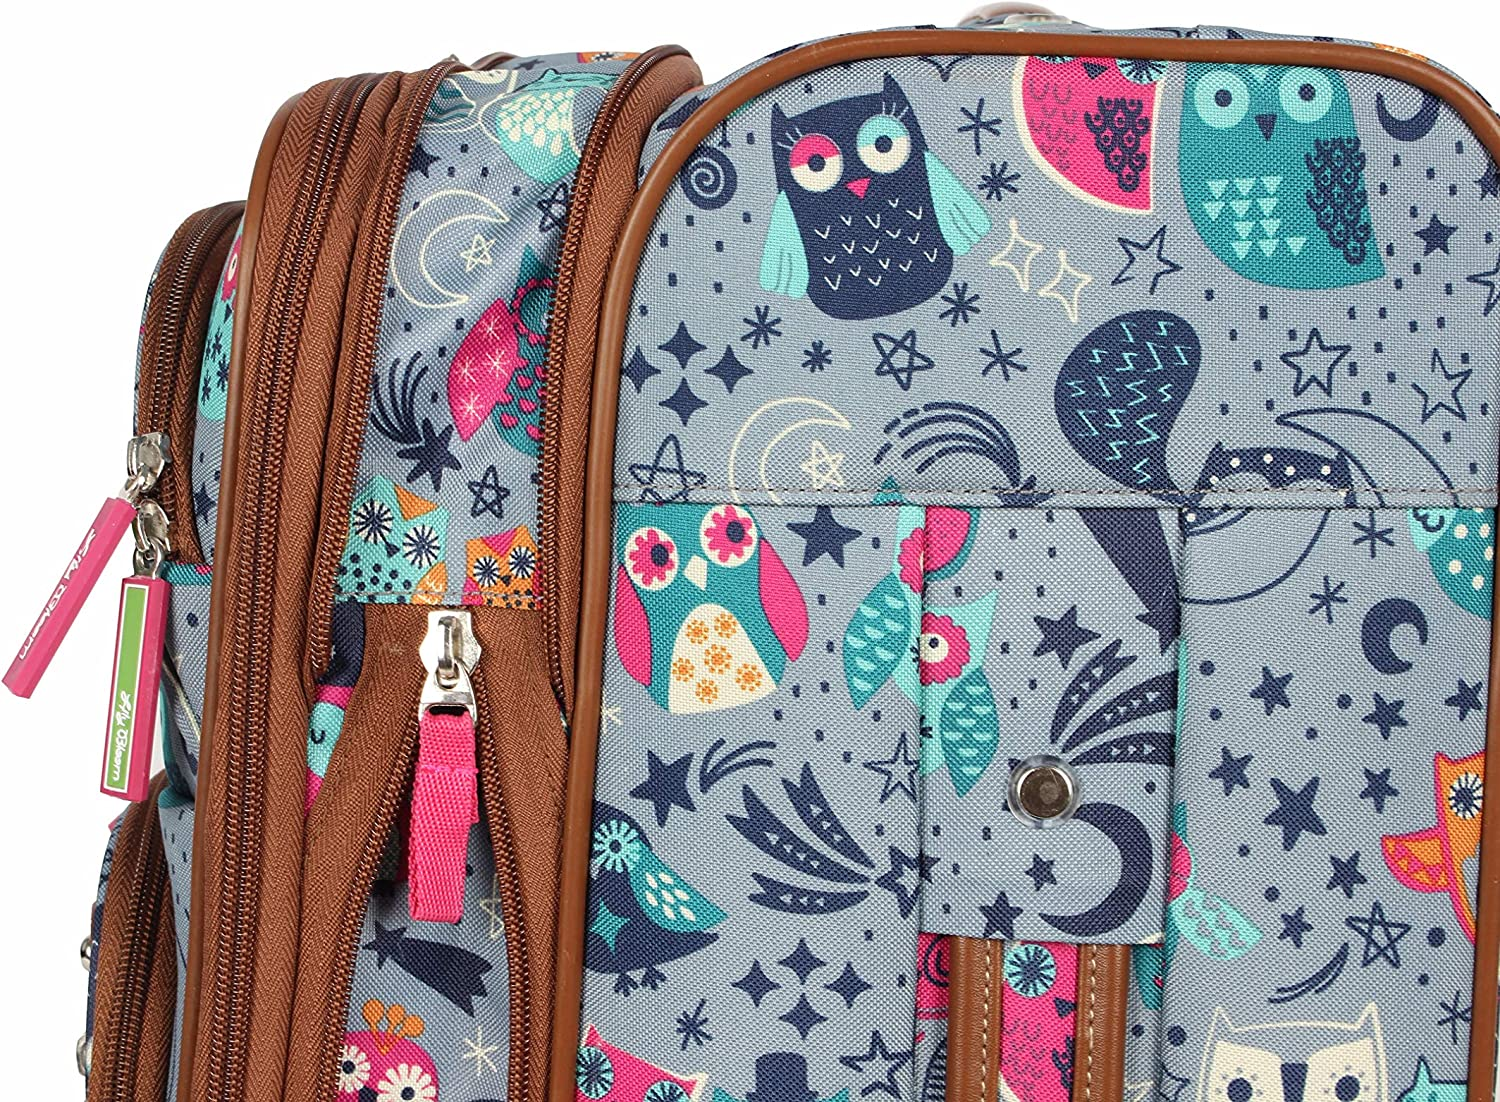 Lily Bloom Luggage Carry On Expandable Design Pattern Suitcase For Woman With Spinner Wheels Aquarium Life, 20in